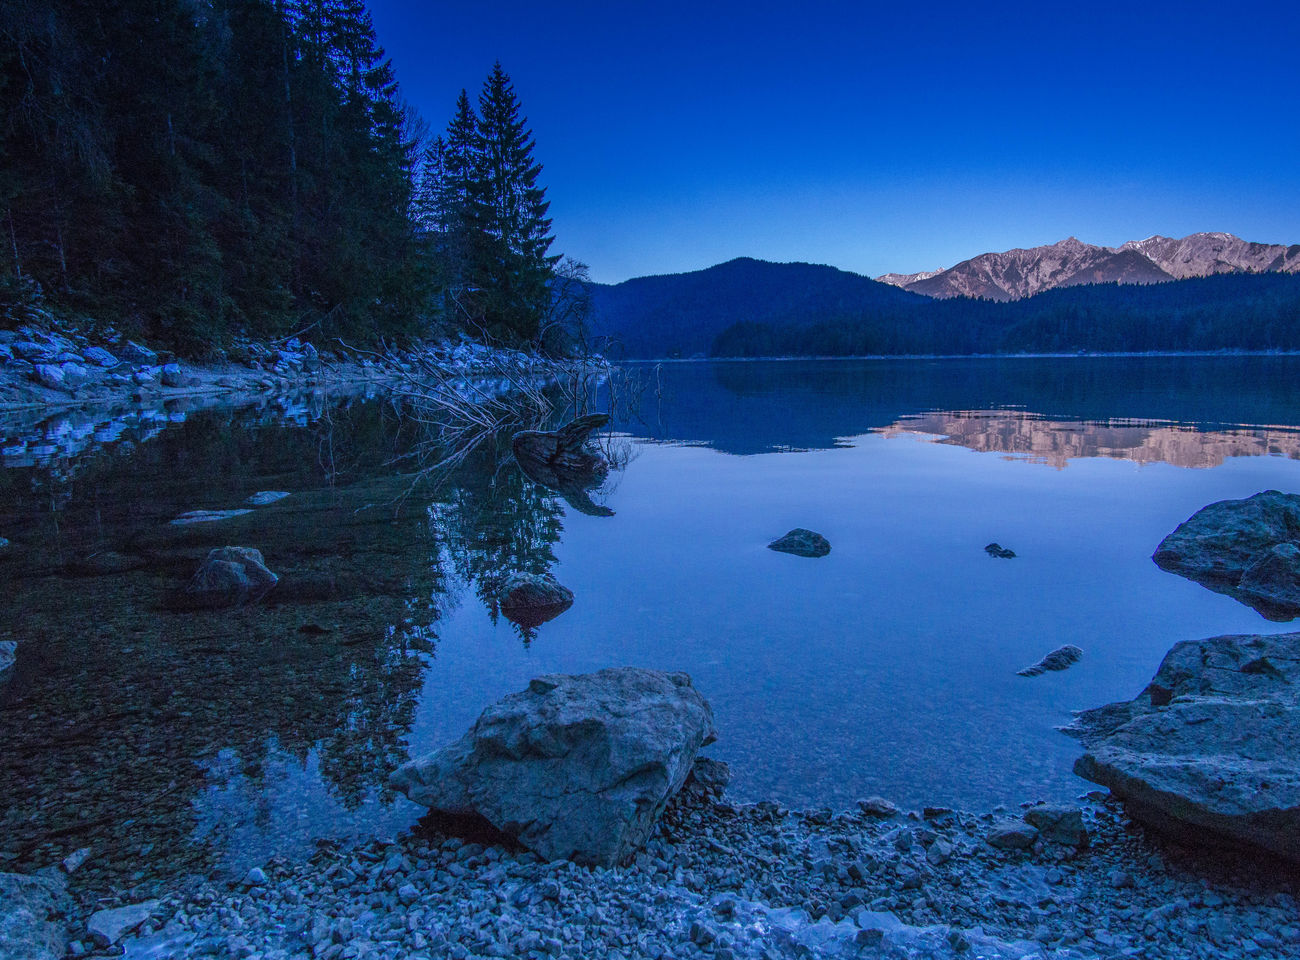 Alps Beauty In Nature Blue Cold Temperature Day Eibsee Forest Lake Landscape Mountain Mountain Range Natural Parkland Nature No People Outdoors Reflection Scenics Sky Snow Tree Water Zugspitze